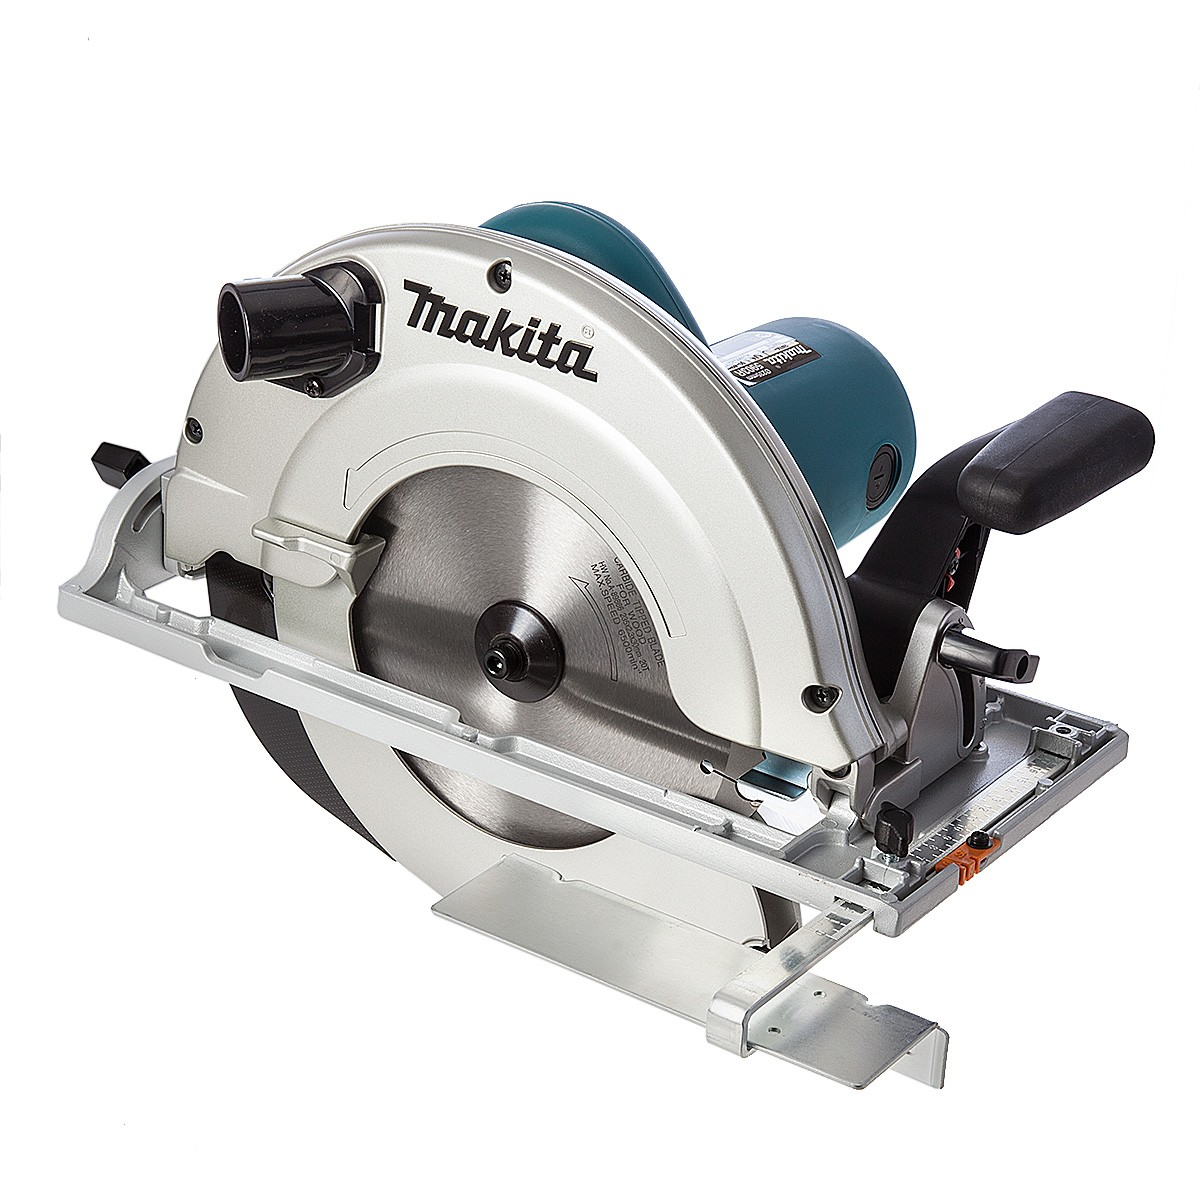 "Makita 5903RK Circular Saw 9"" / 235mm with Case"